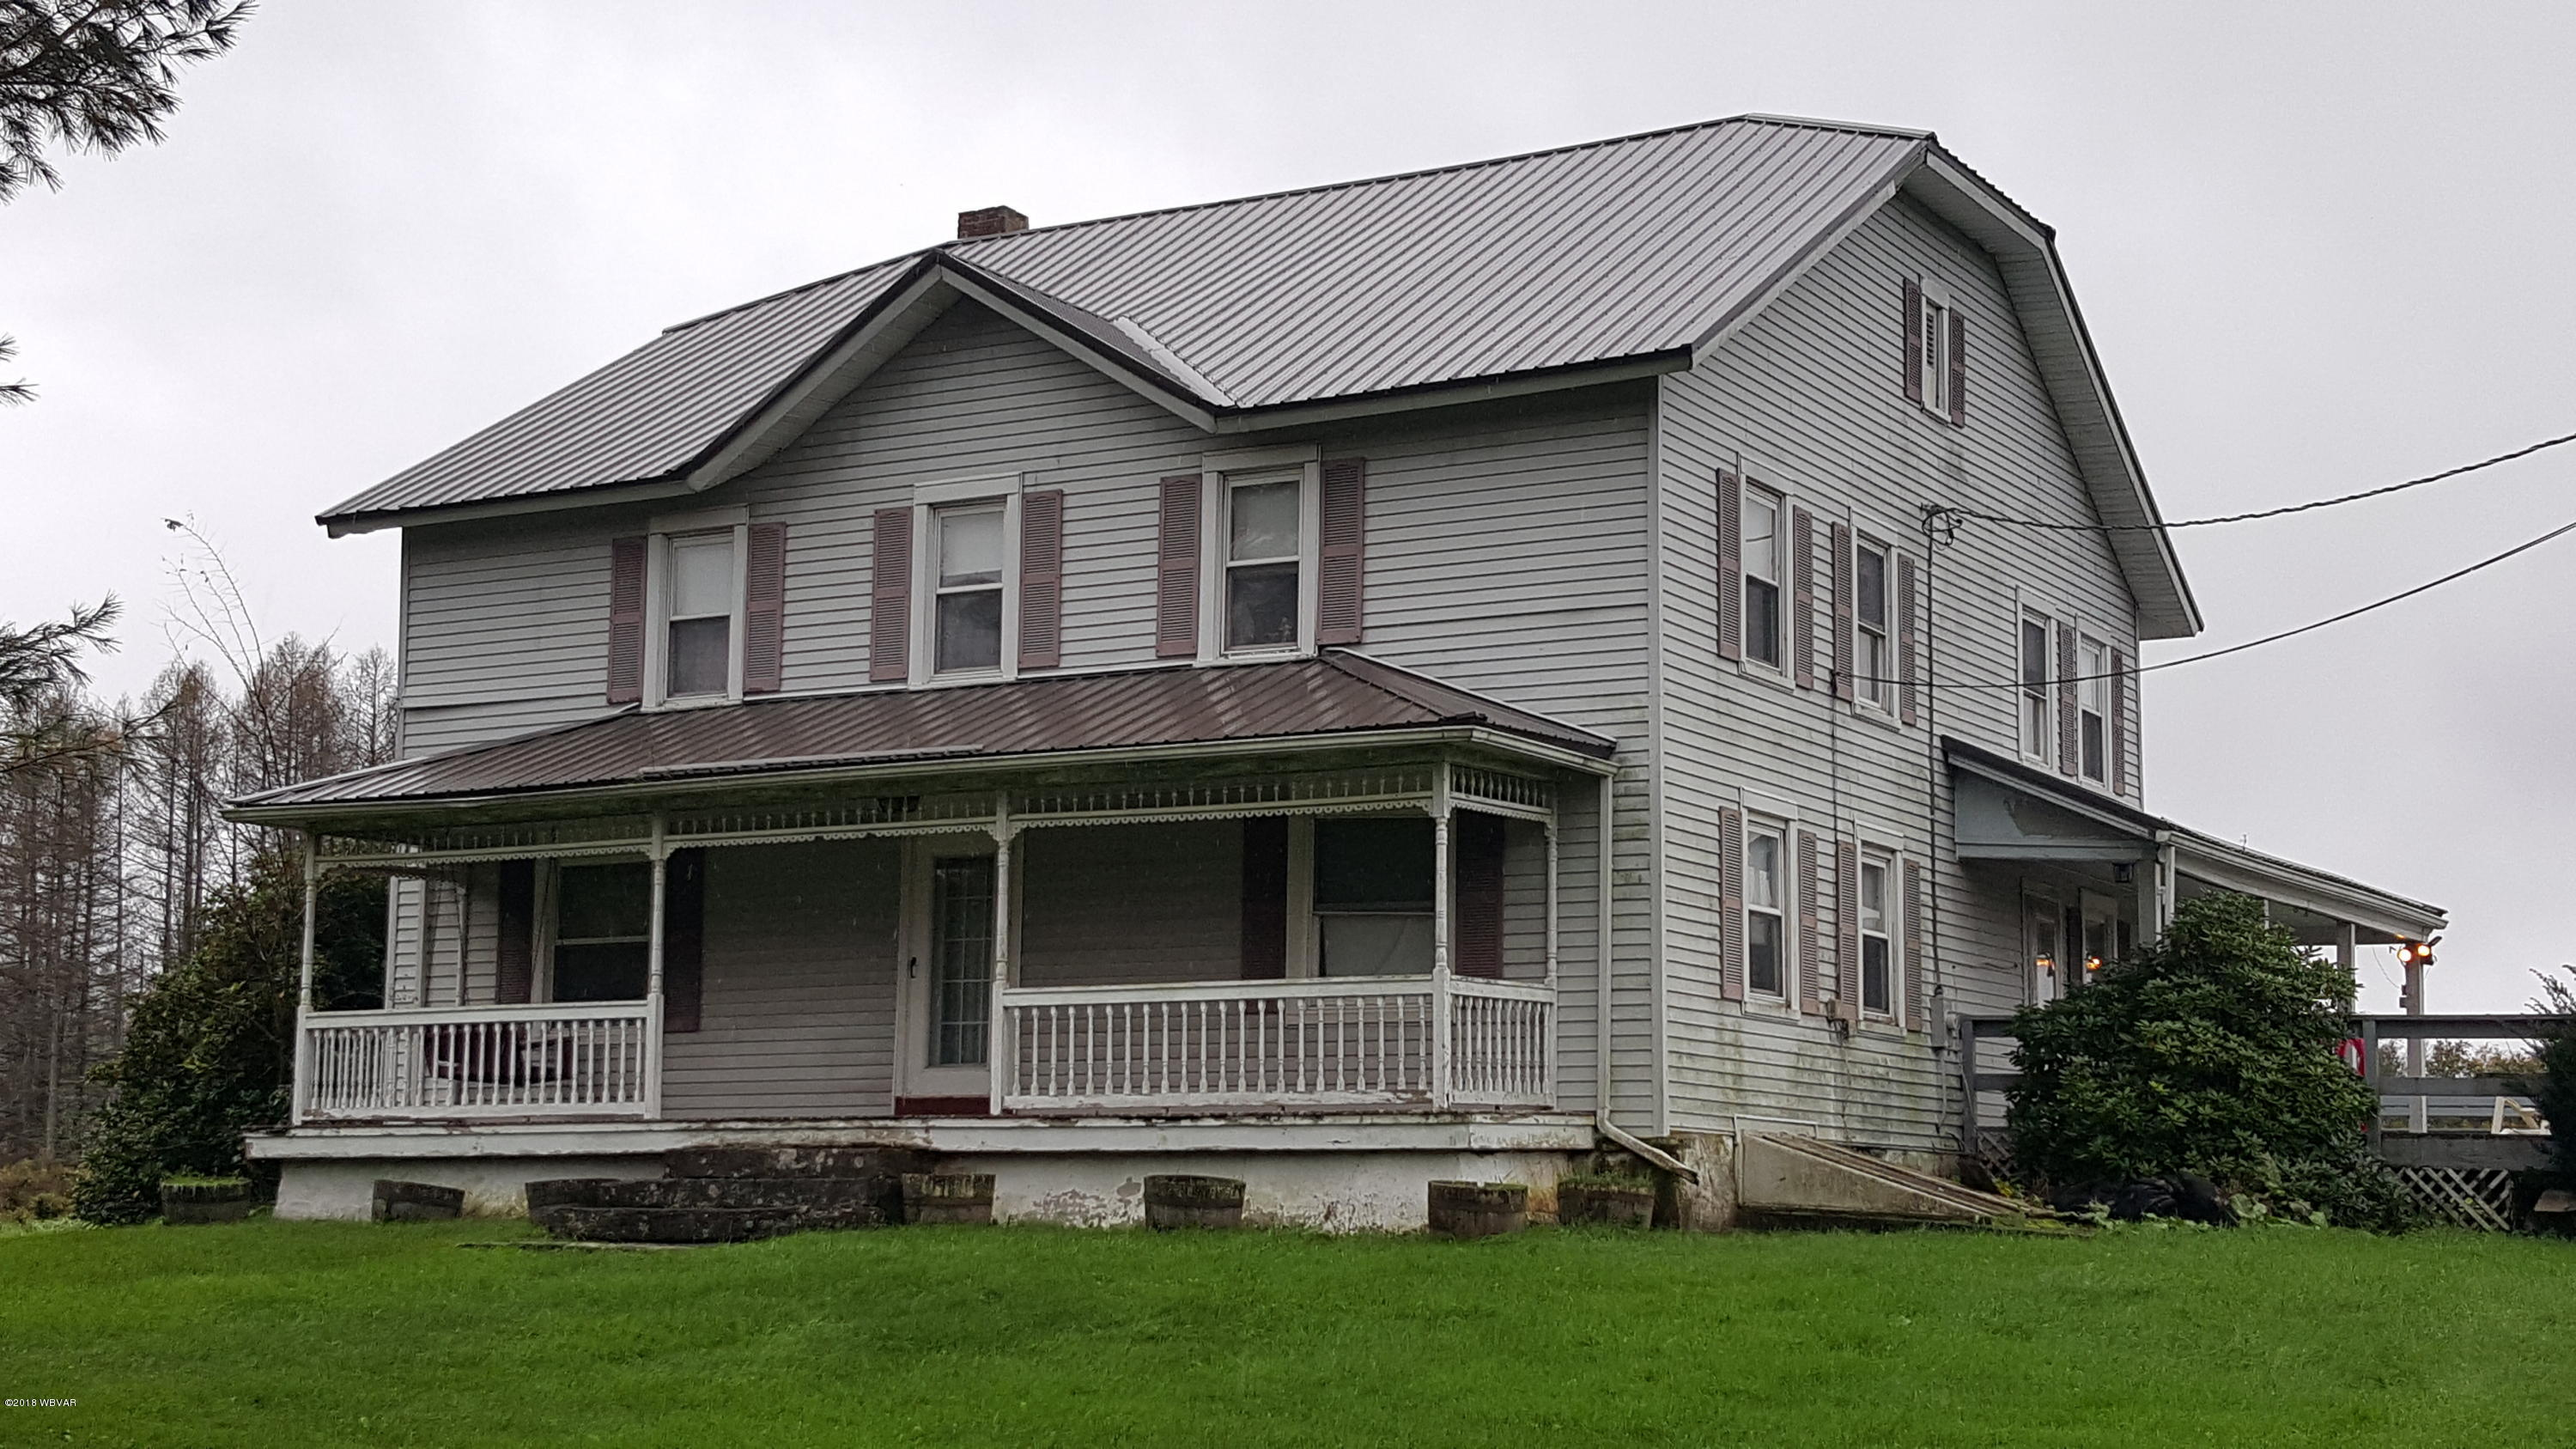 491 GAINER HILL ROAD,Dushore,PA 18614,6 Bedrooms Bedrooms,2 BathroomsBathrooms,Residential,GAINER HILL,WB-86060